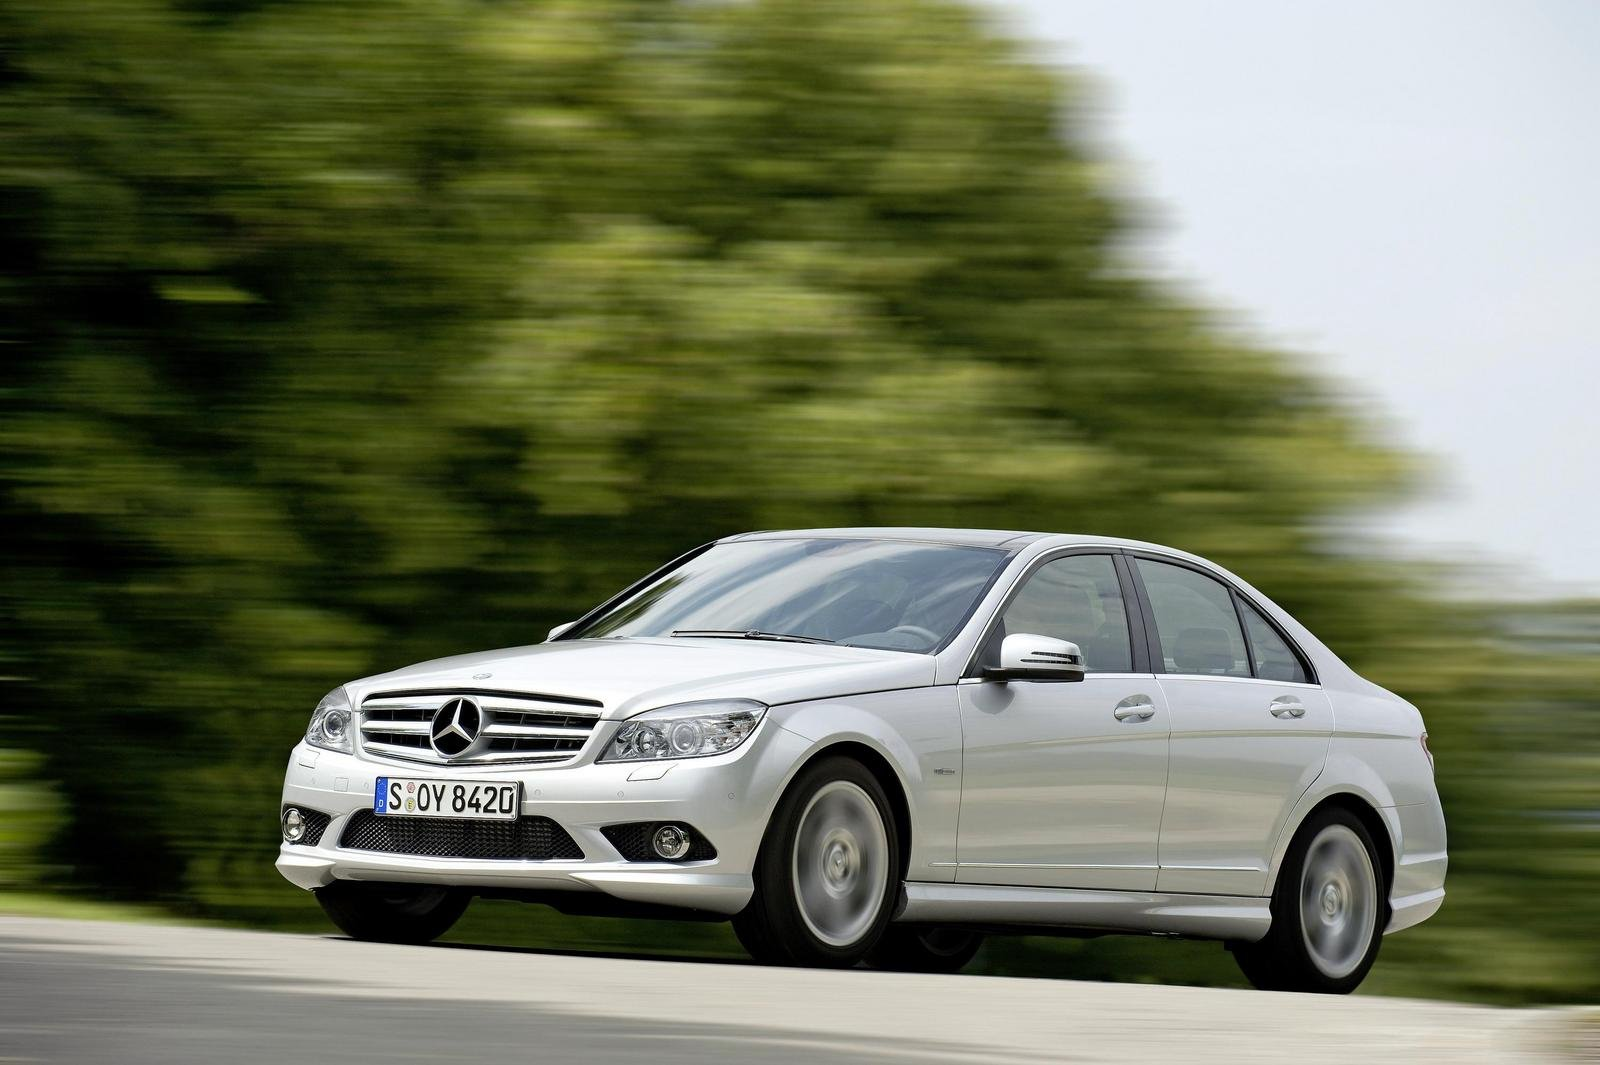 2008 mercedes c250 cdi blueefficiency prime edition review gallery top speed. Black Bedroom Furniture Sets. Home Design Ideas